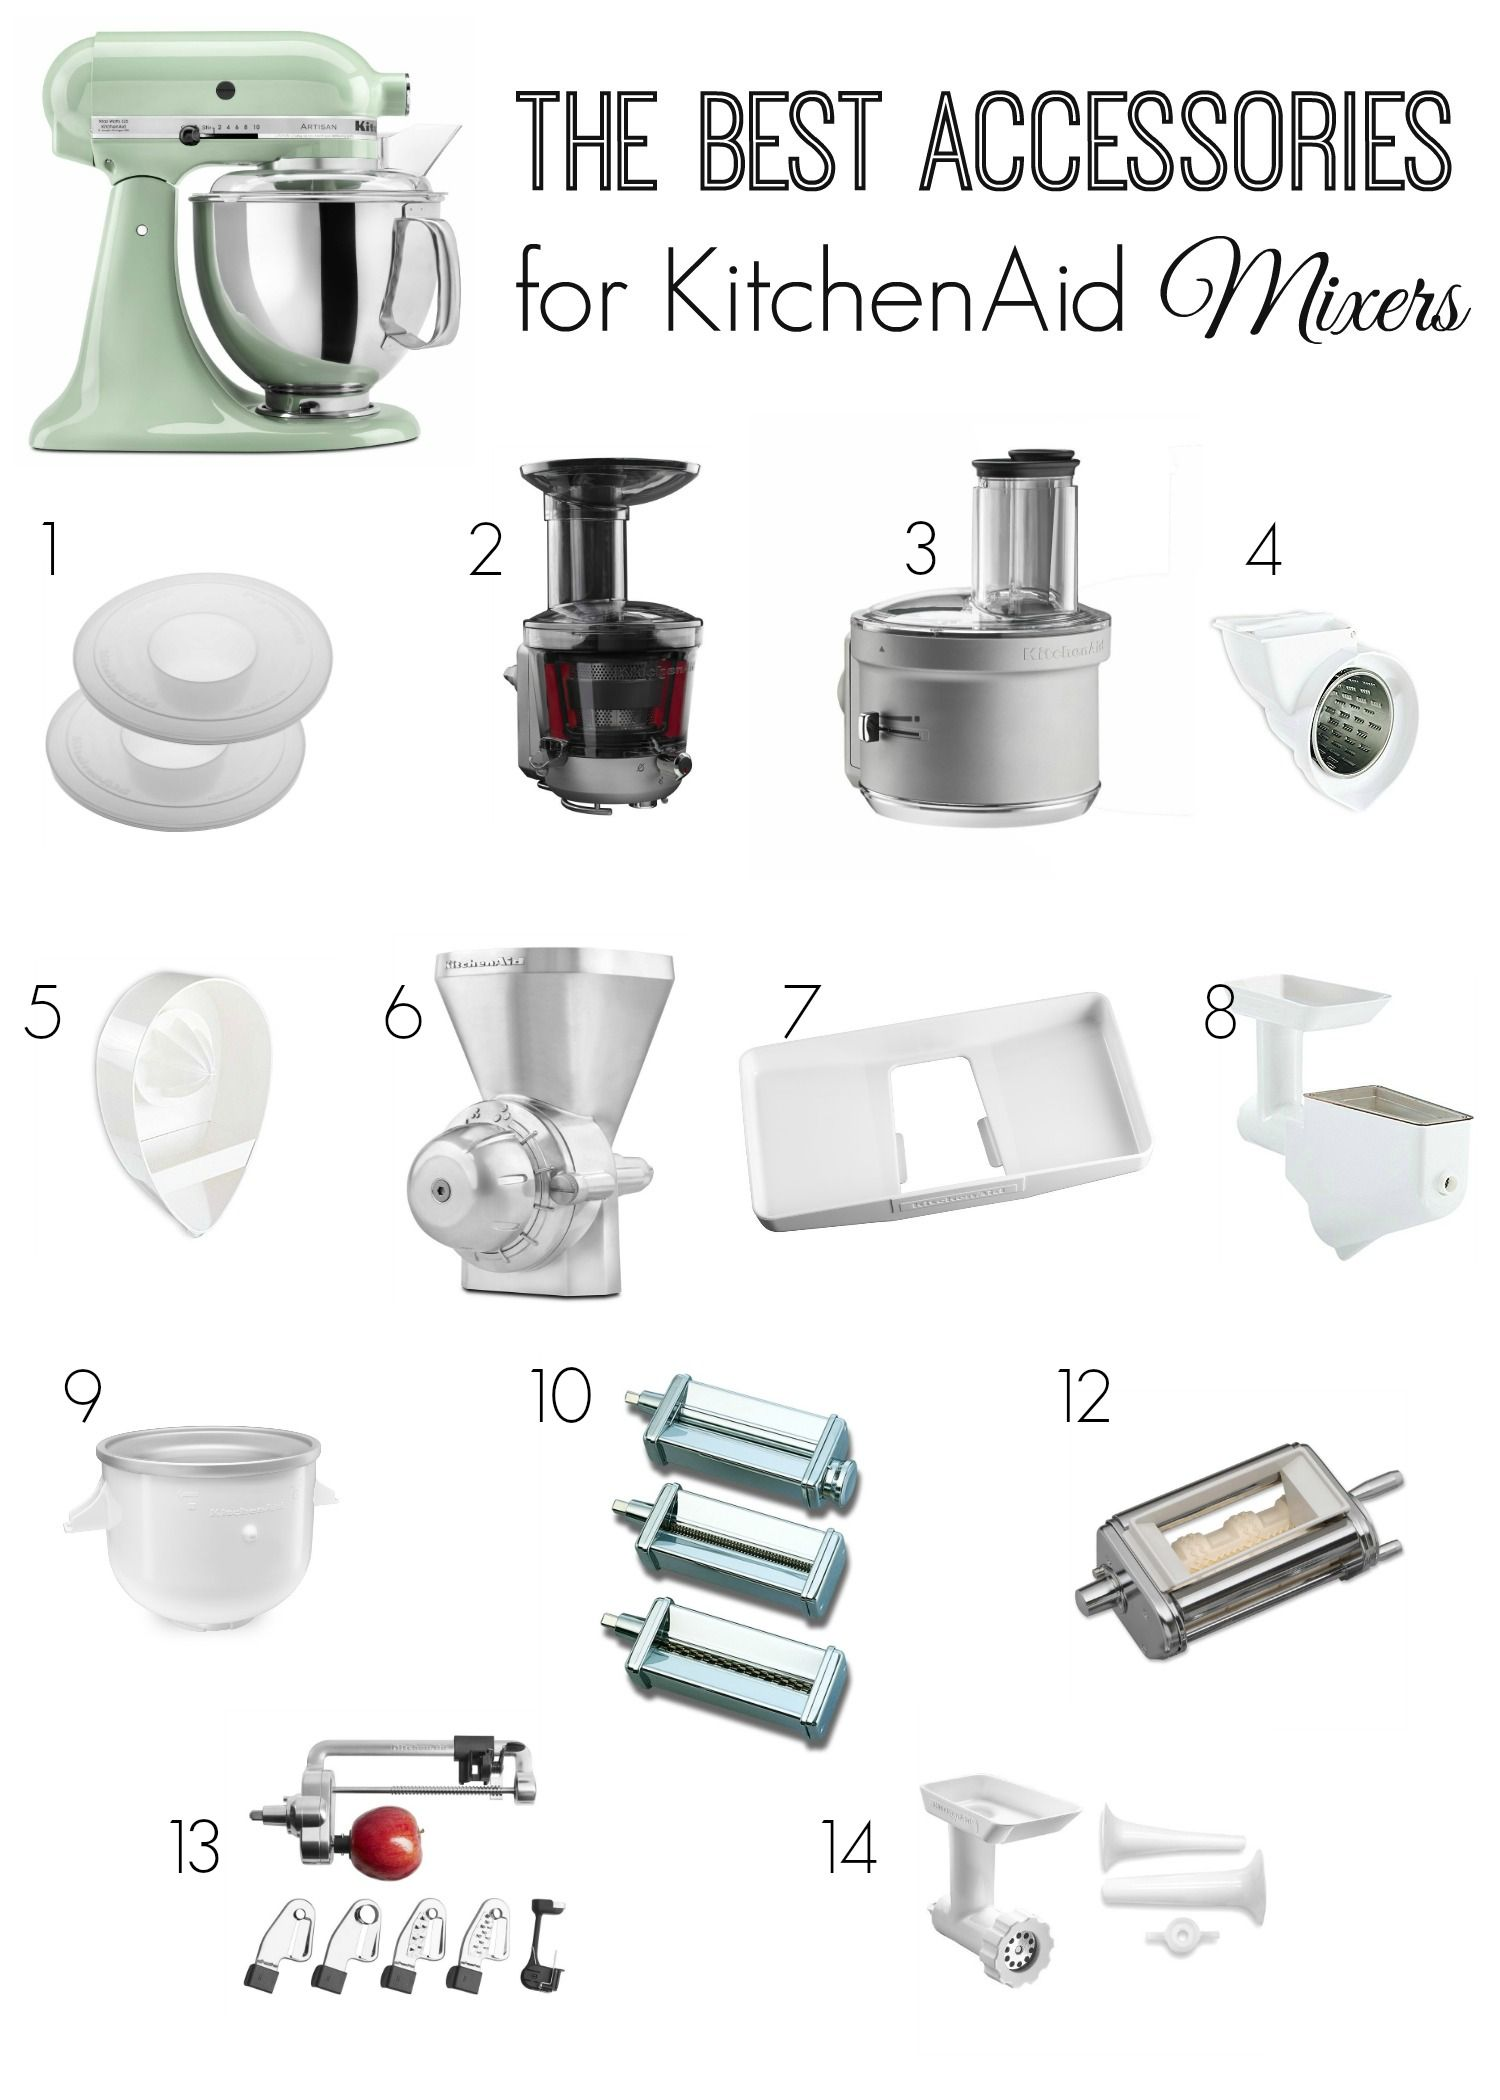 Kitchenaid Attachments If You Have A Kitchenaid Stand Mixer You'll Love This List Of The